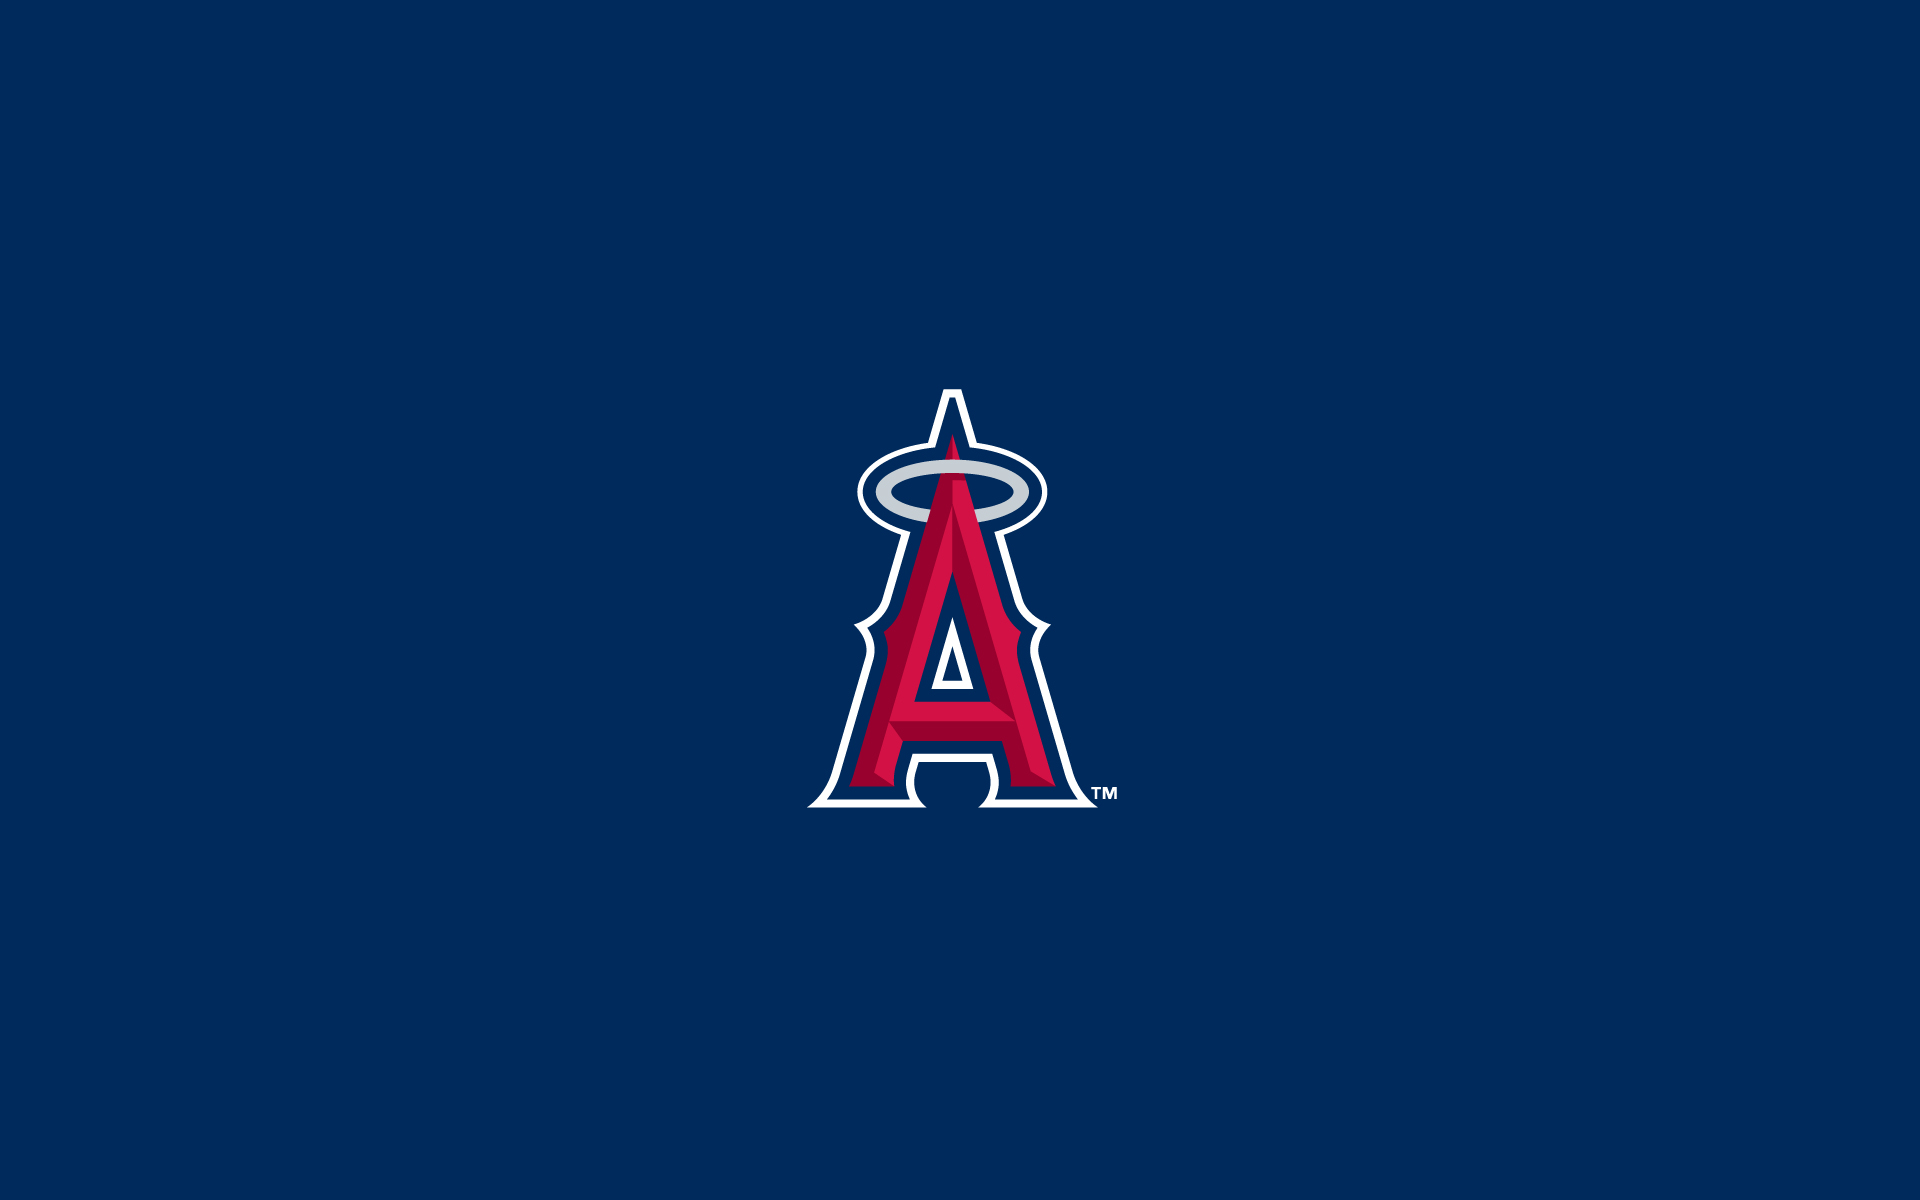 1920x1200 - Los Angeles Angels of Anaheim Wallpapers 5